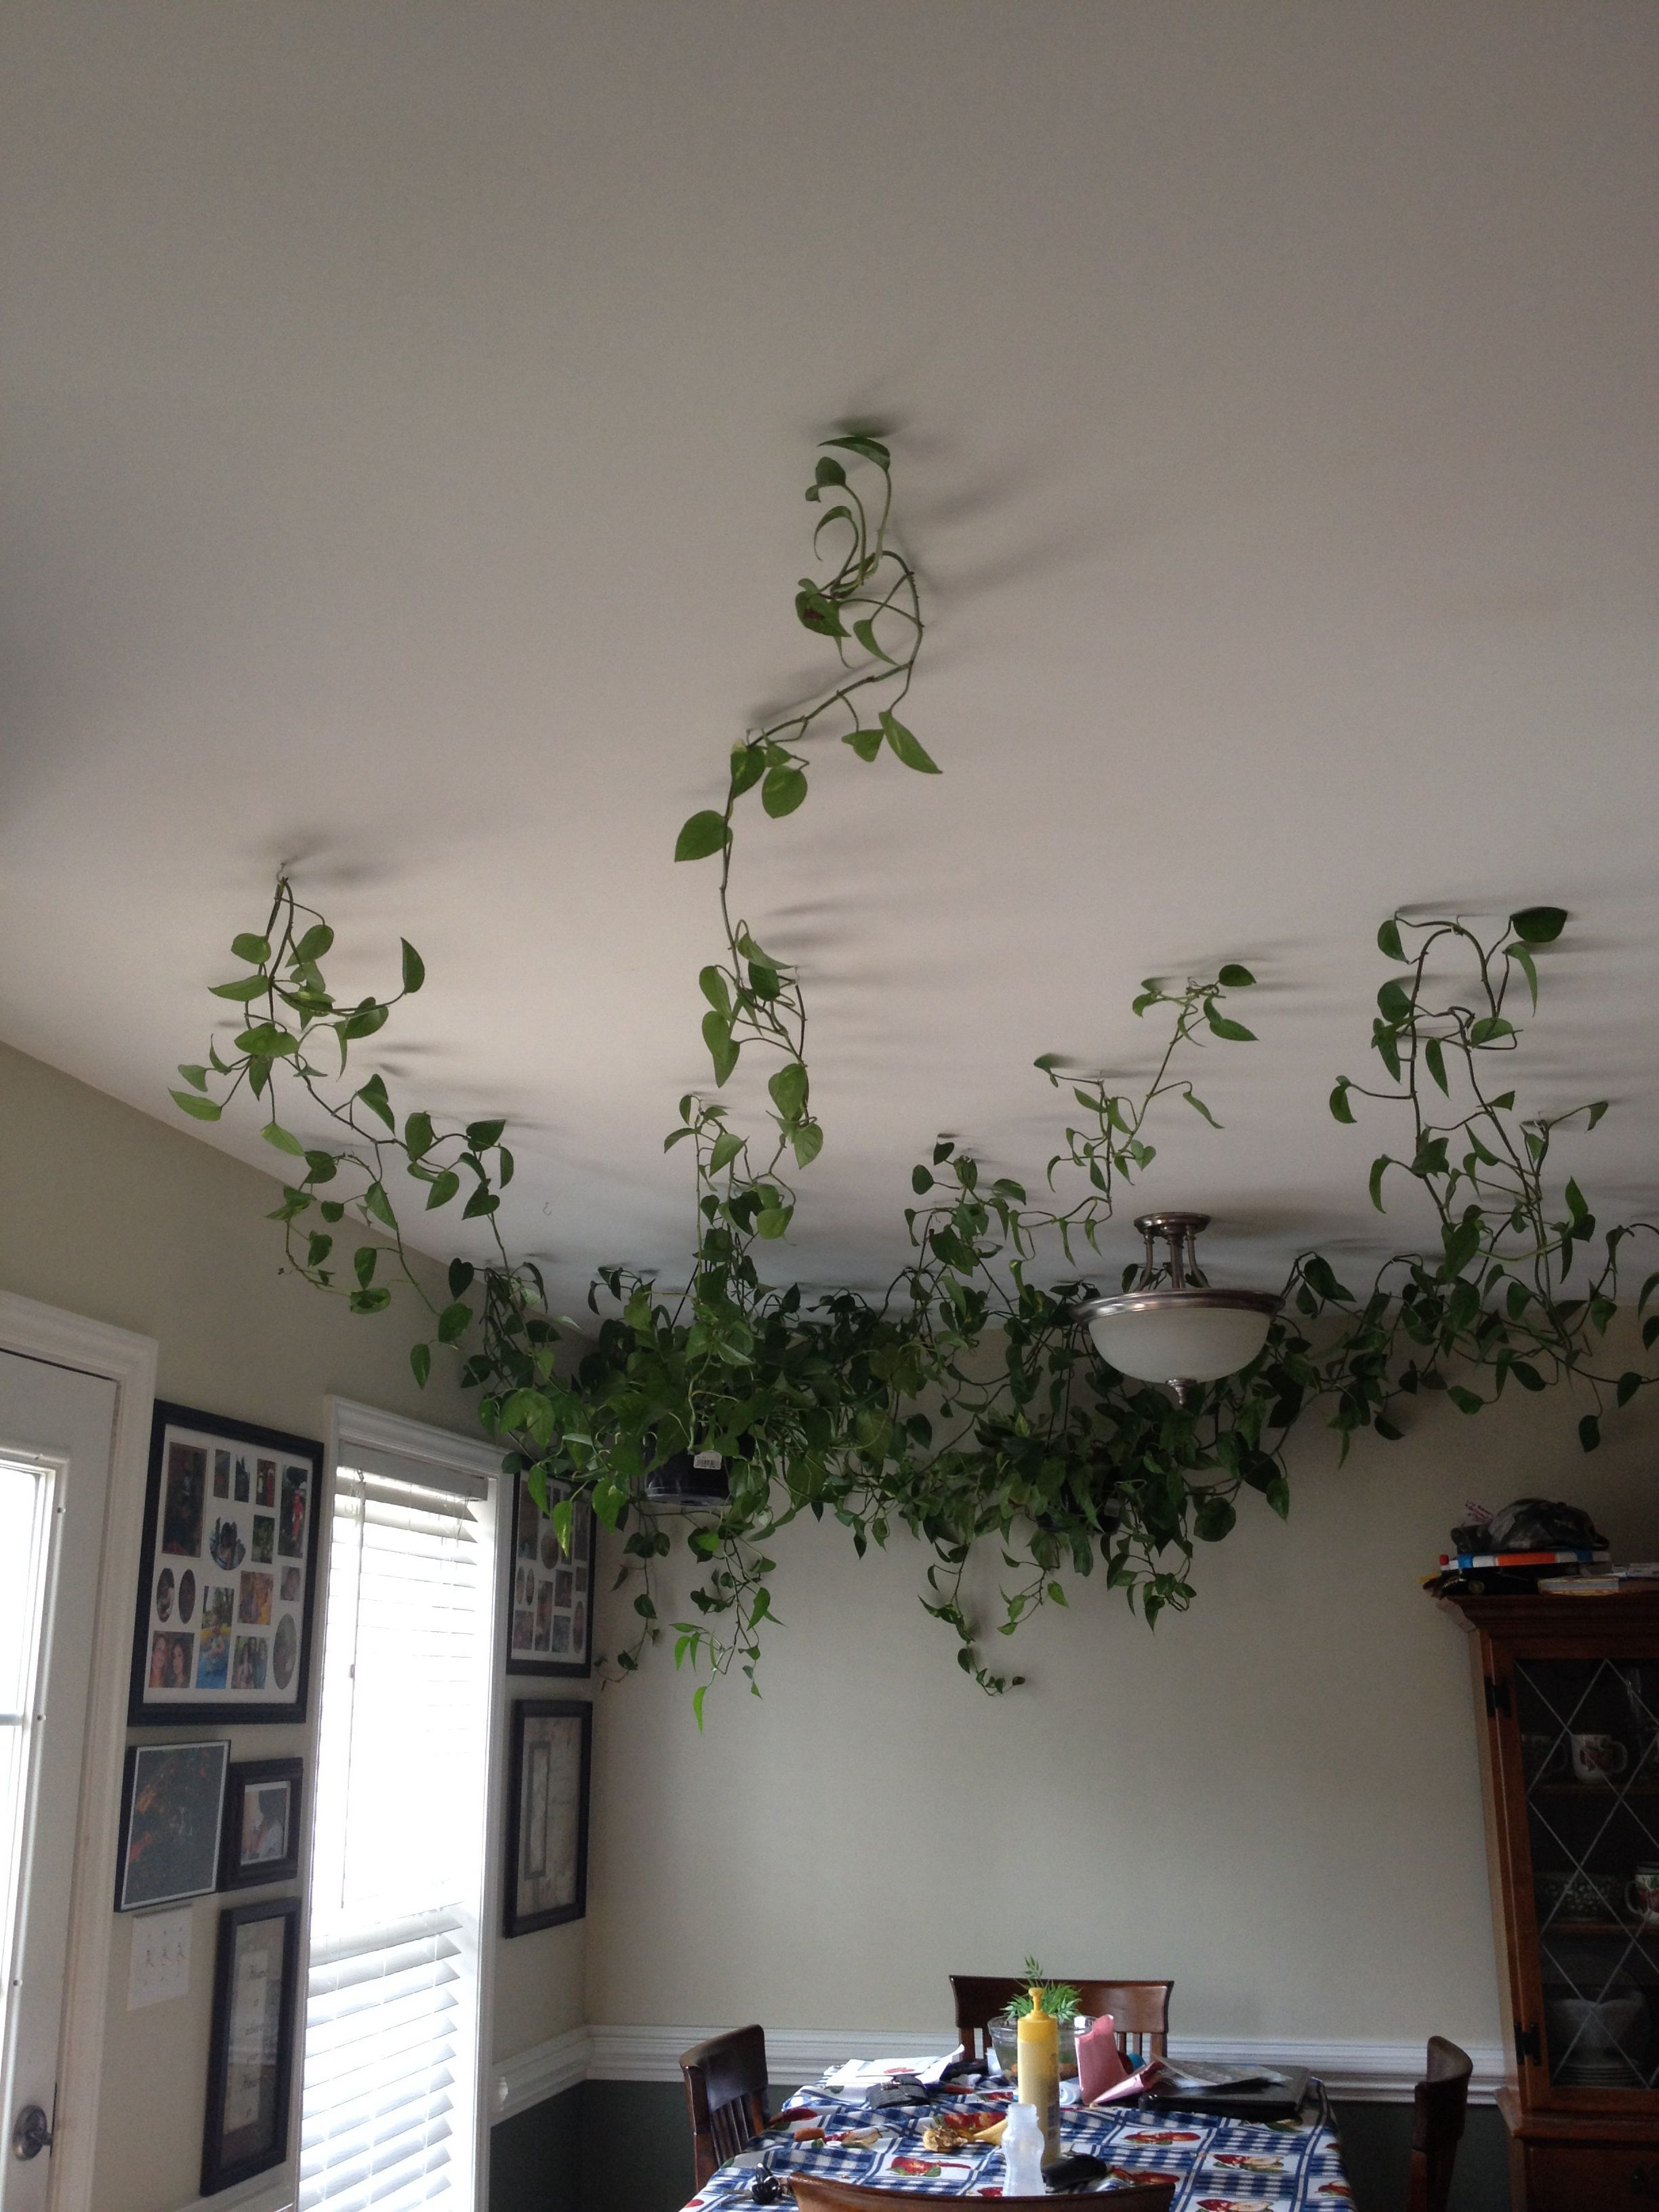 Hanging Vine Plants Across The Ceiling Use Hanging Hooks To Place Vines Hanging Vine Plants Across In 2020 Fake Plants Decor Room With Plants Fake Hanging Plants